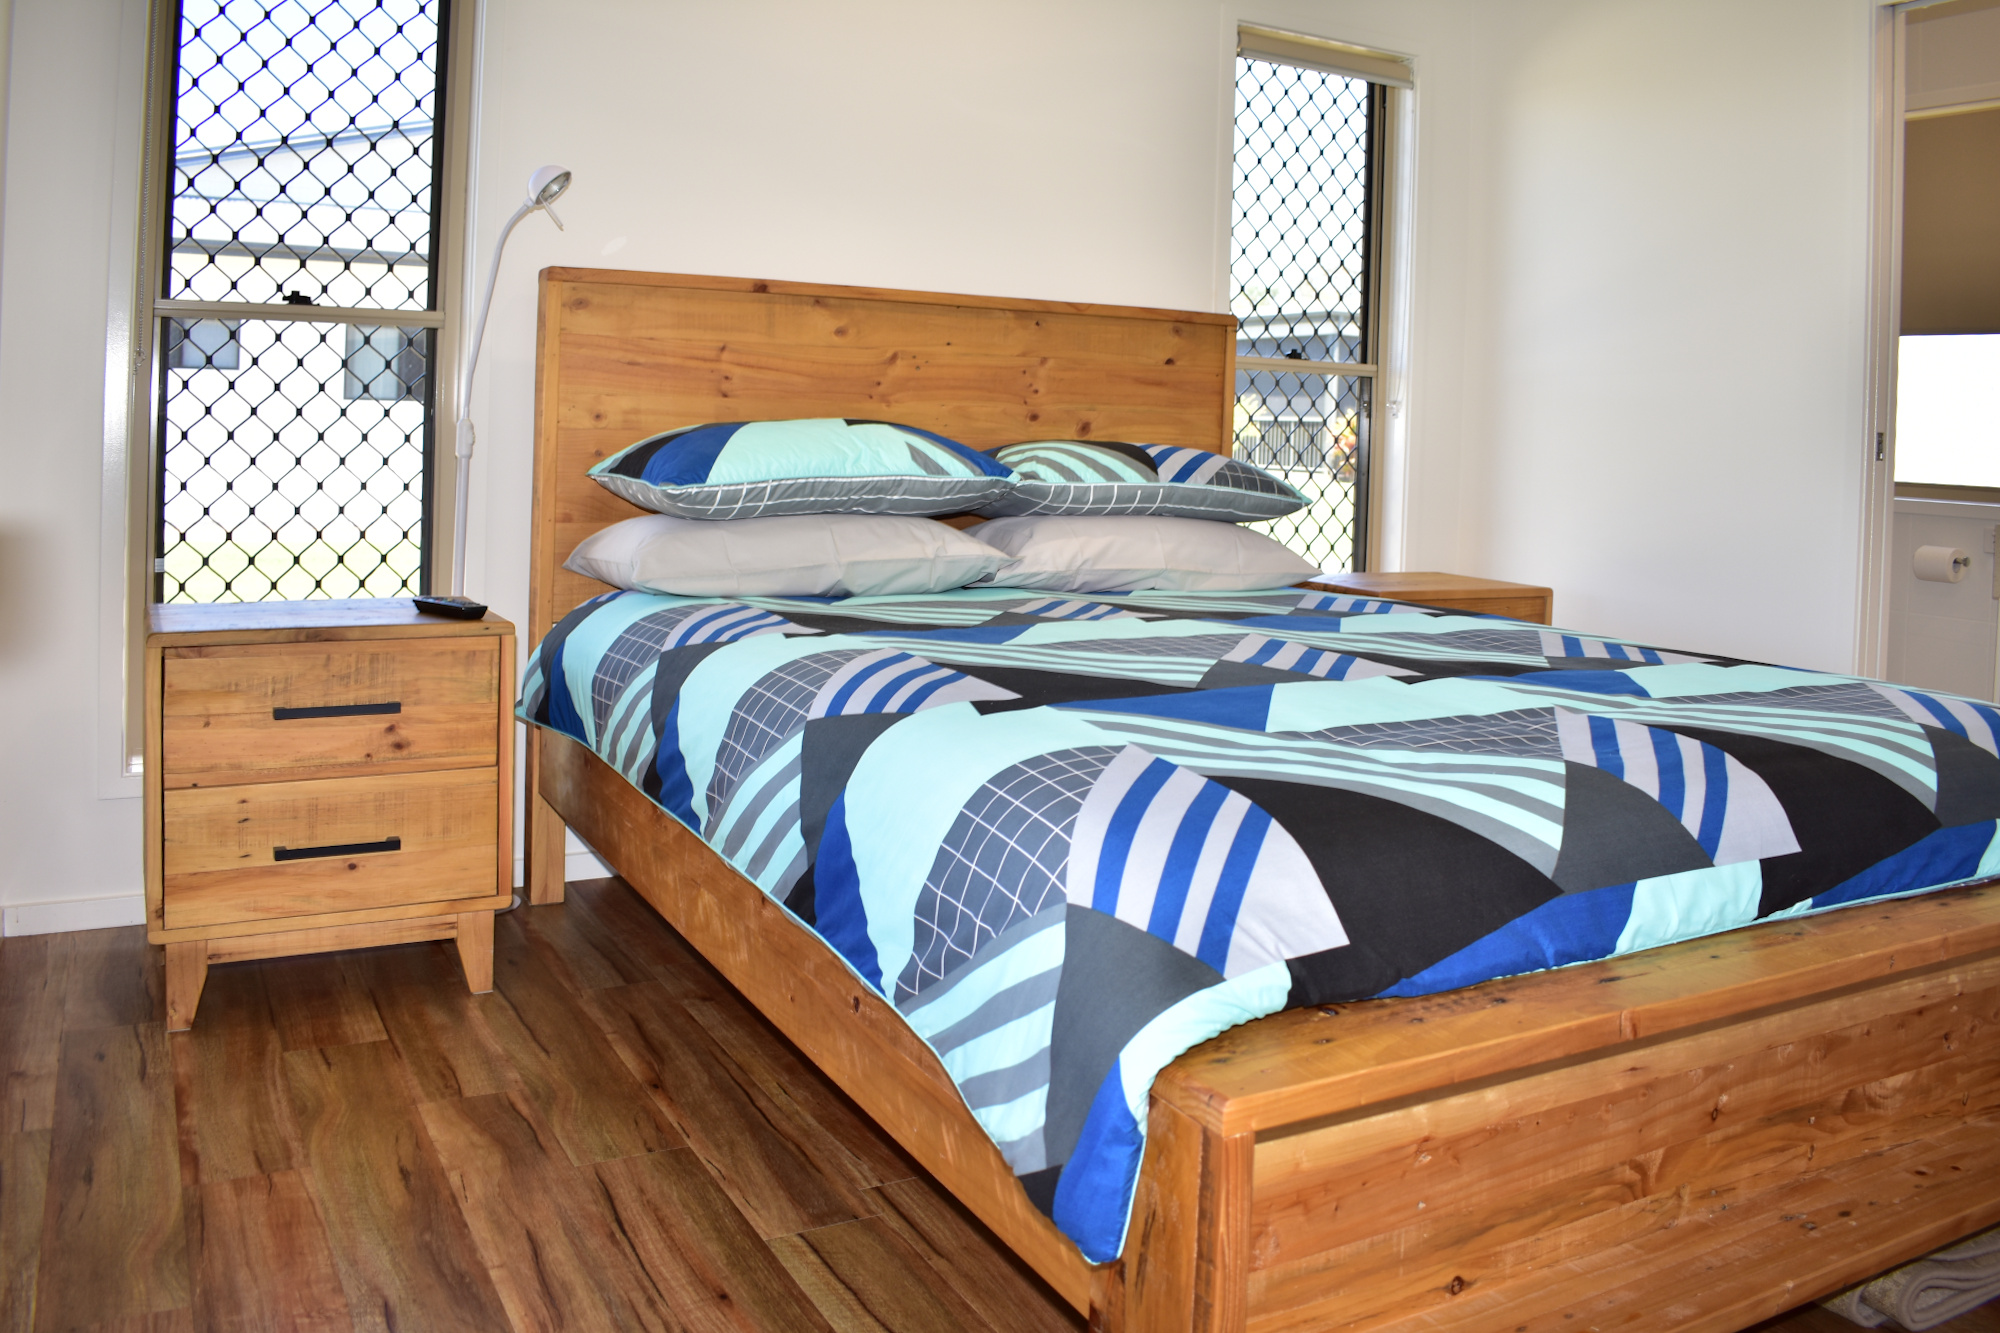 SITE_219_BED2_1